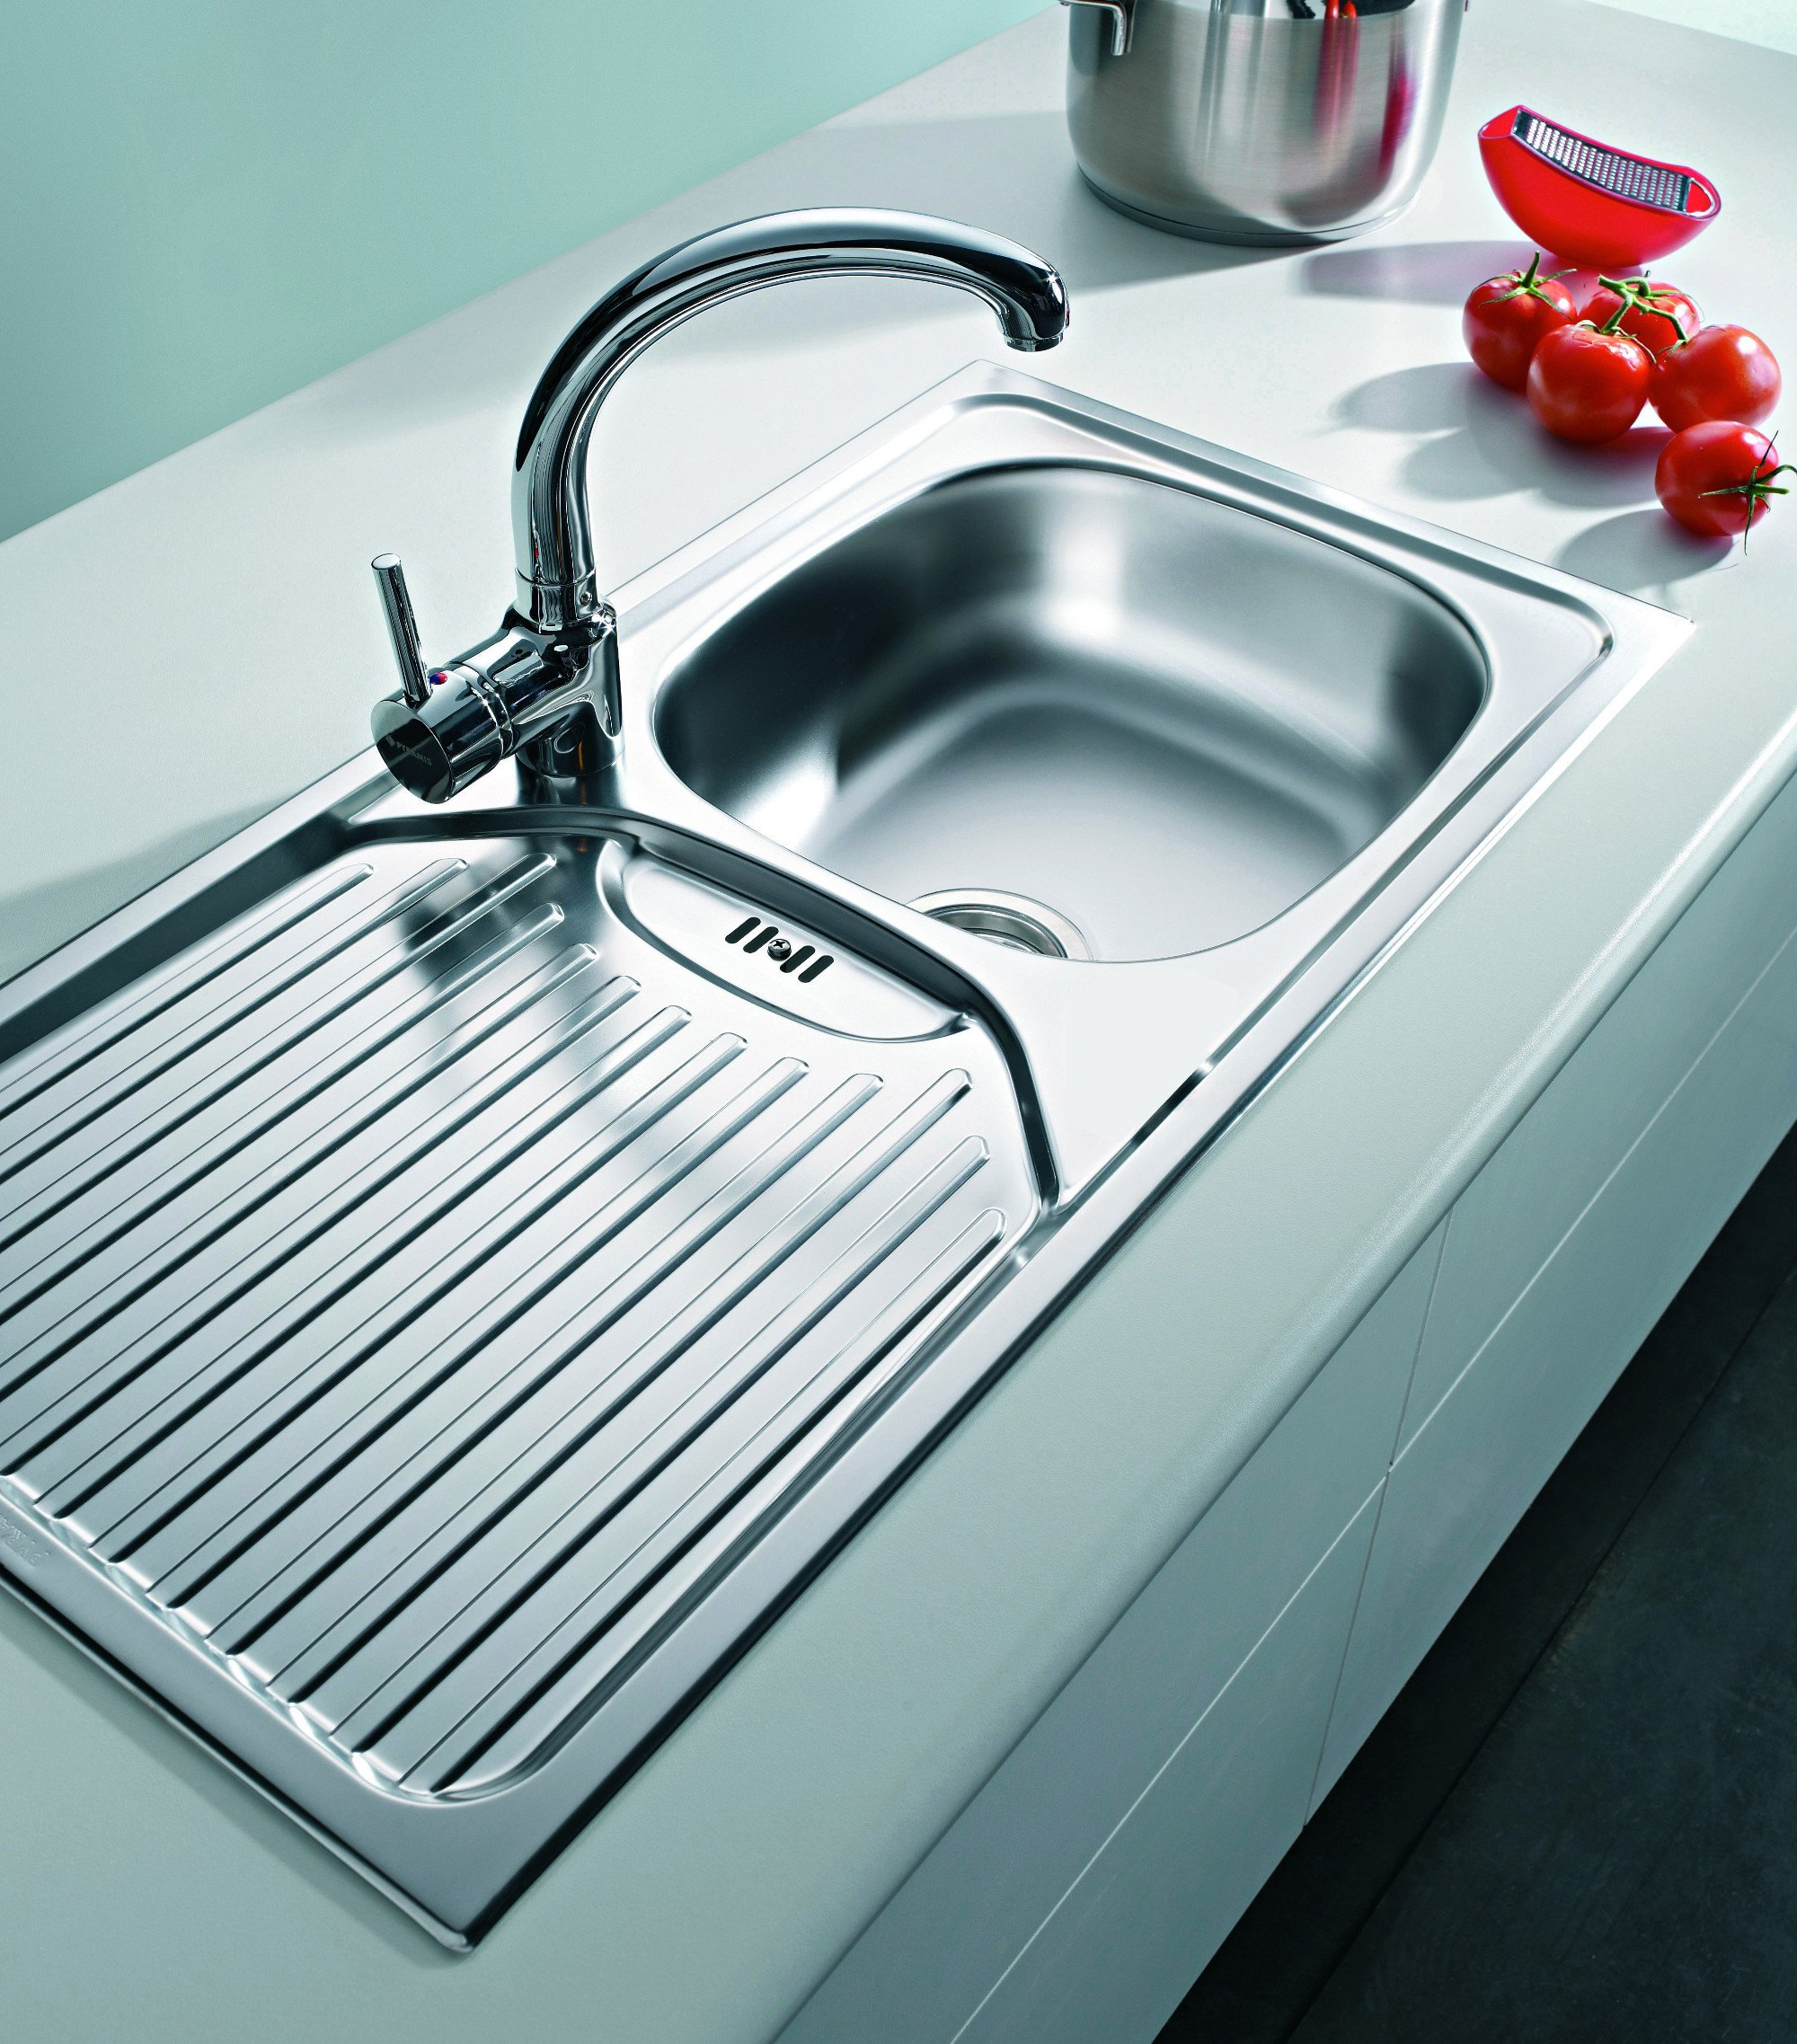 Stainless Steel Kitchen Sink High Quality Single Bowl Basin With ...